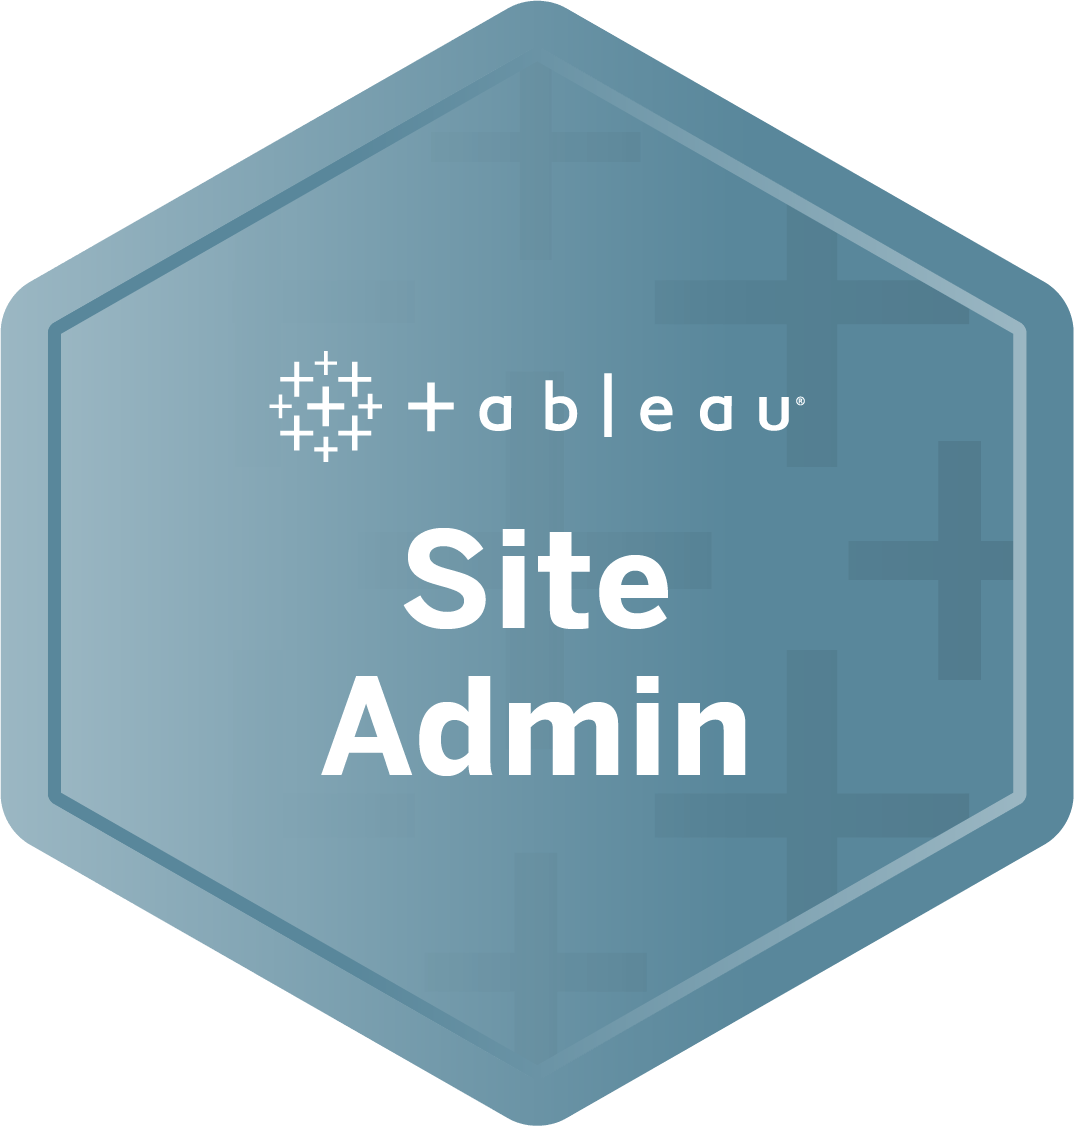 Site Admin badge